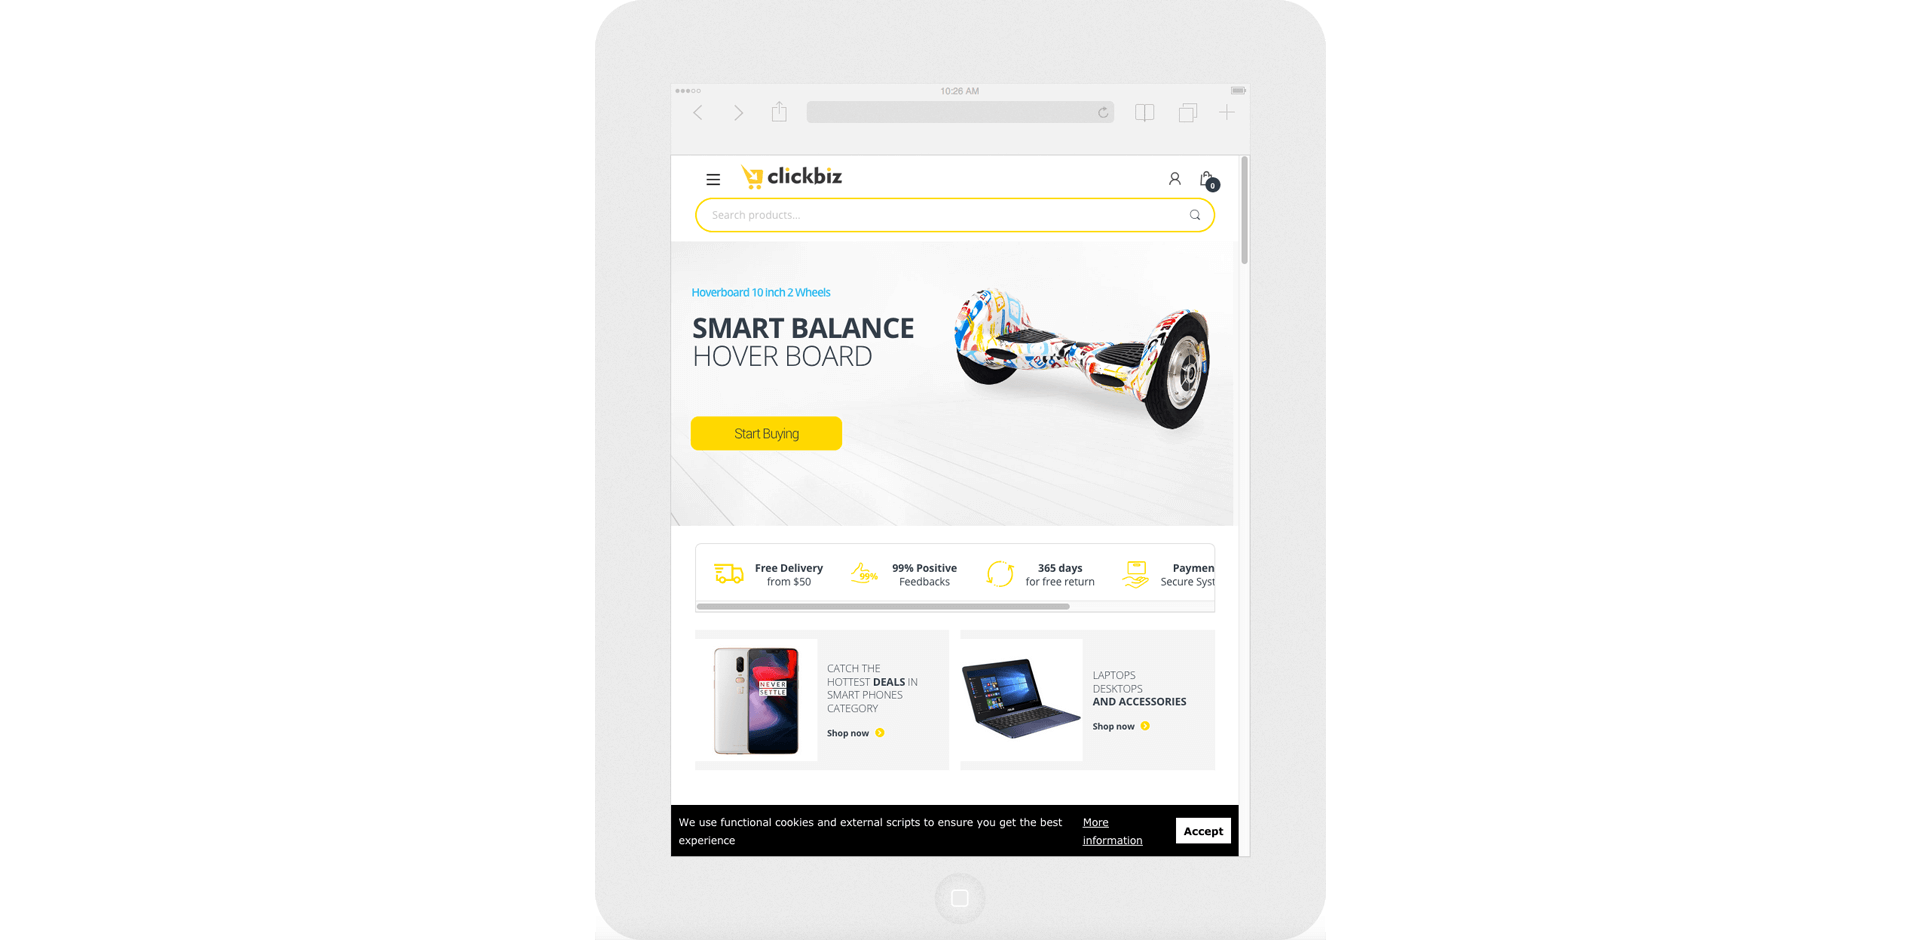 ClickBiz Tablet View